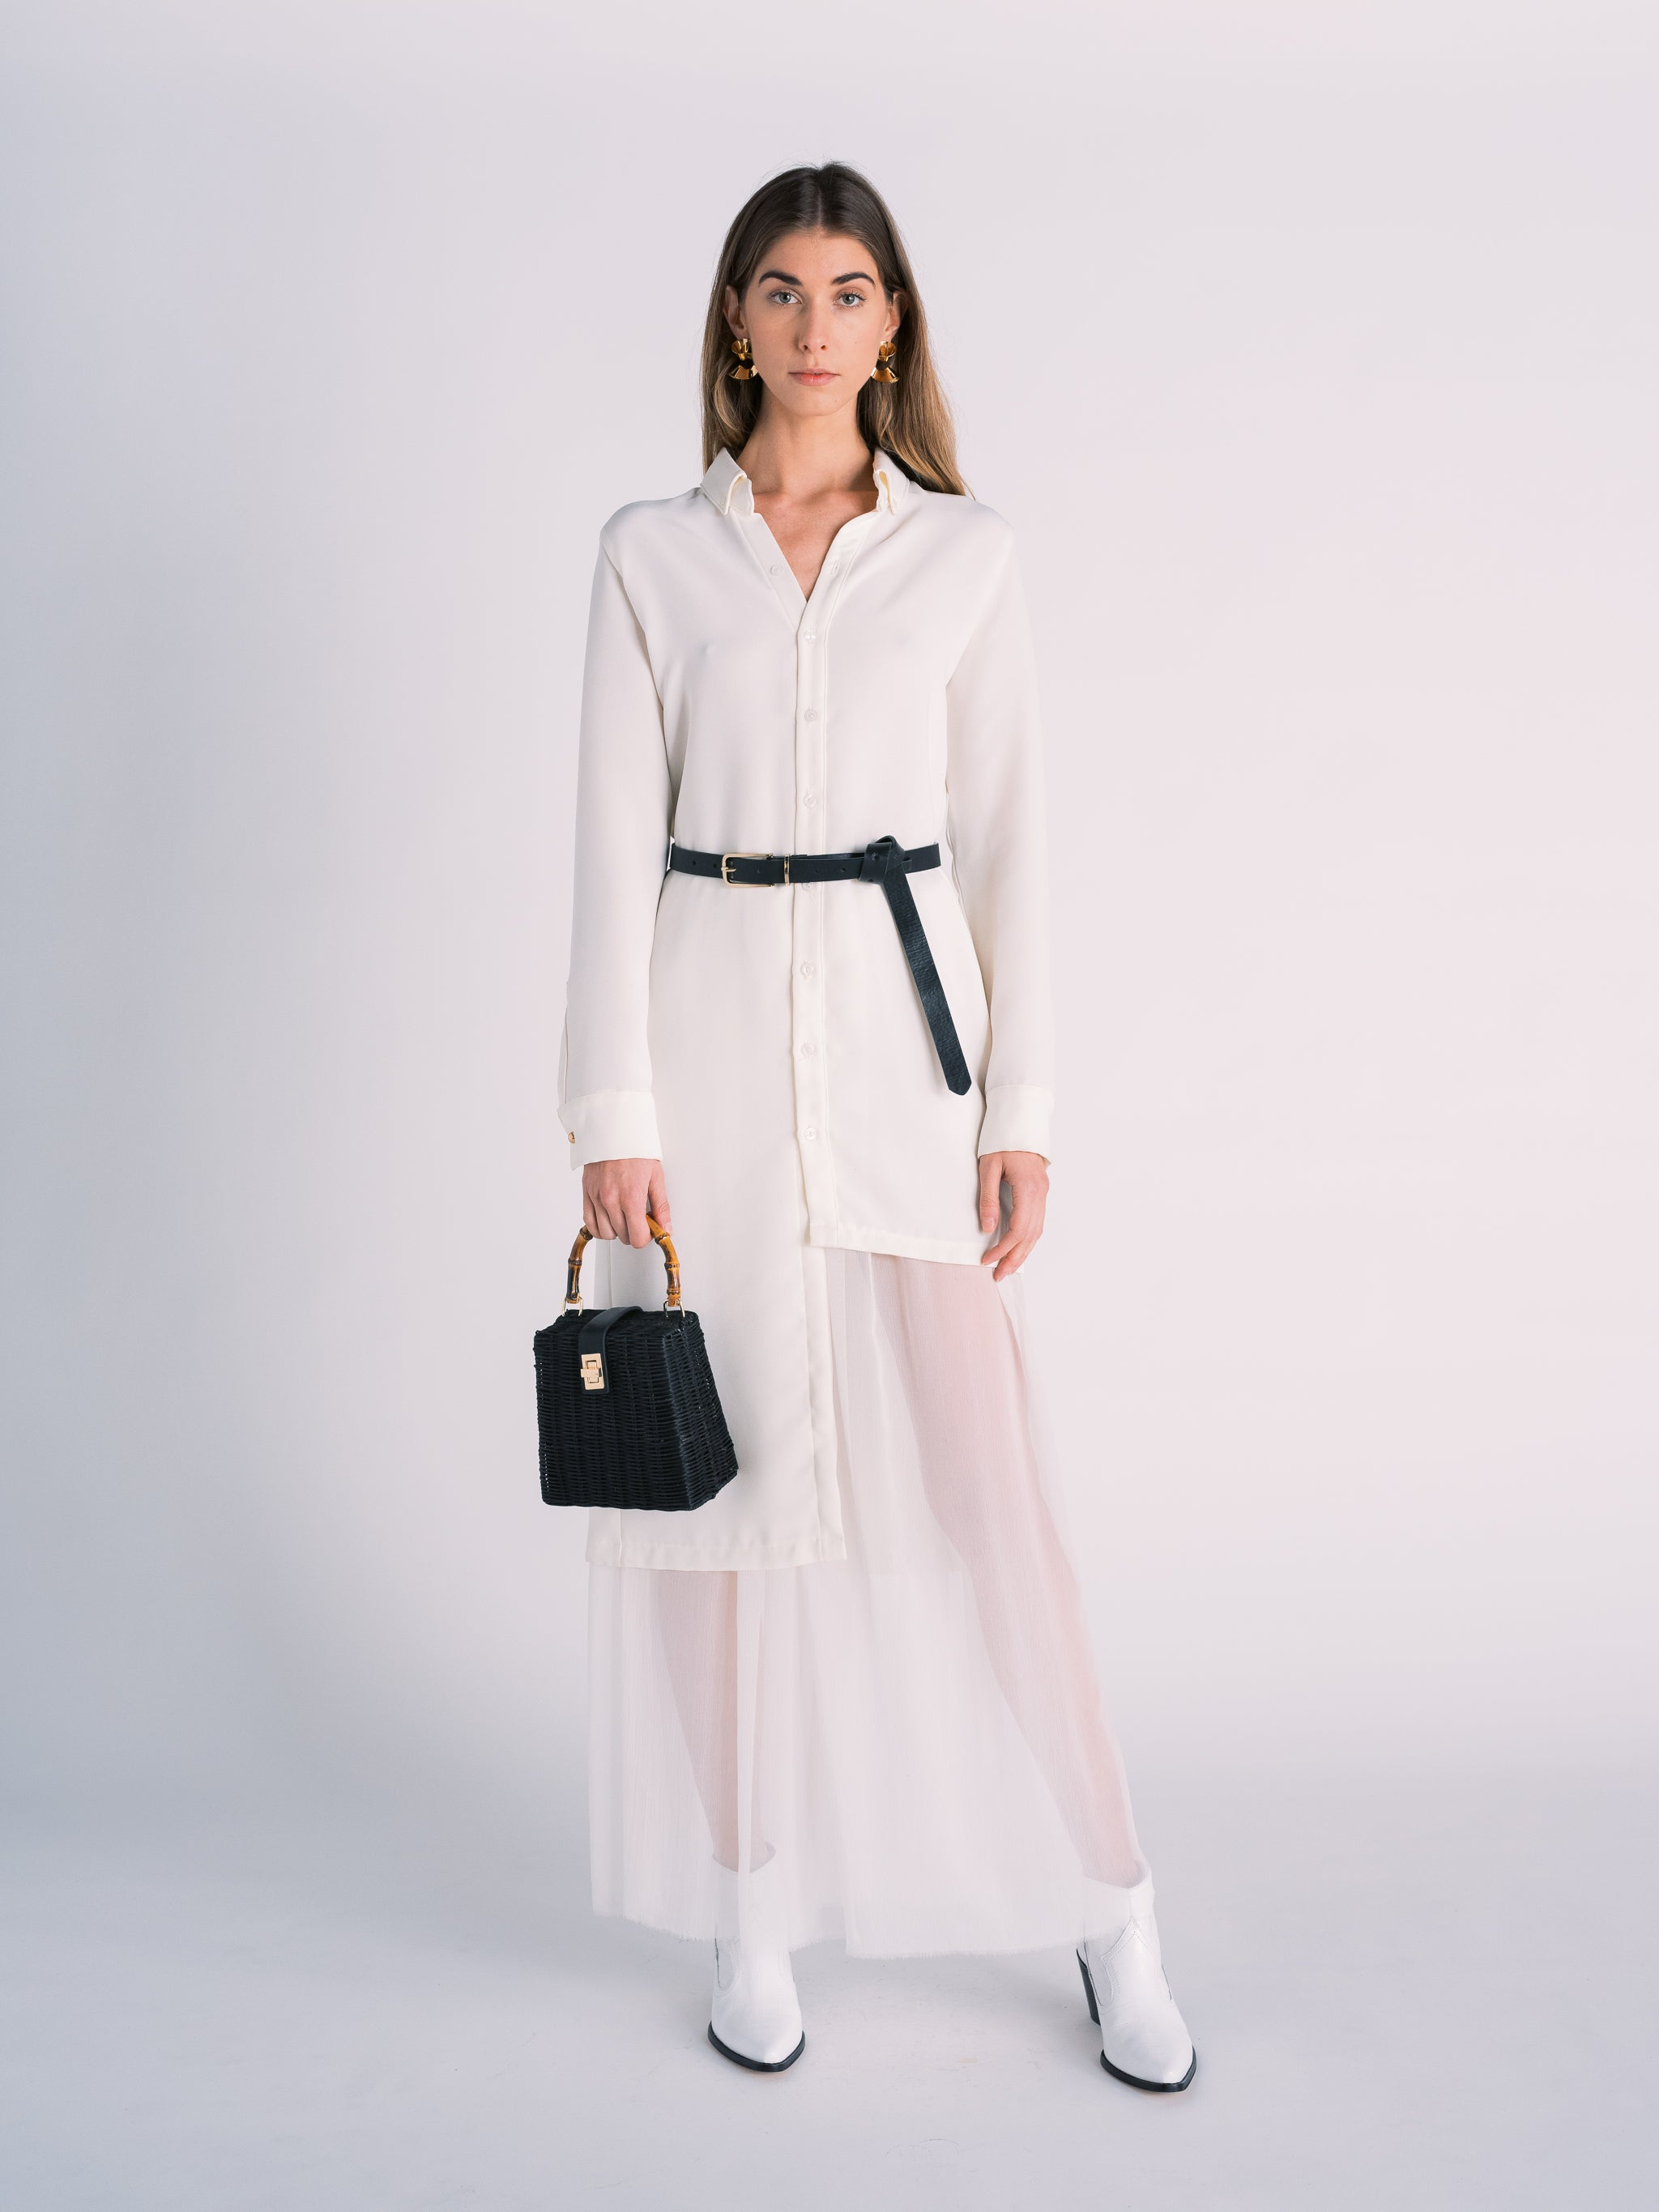 Asymmetric Collared Button Down Dress with Silk Slip Maxi Skirt in White